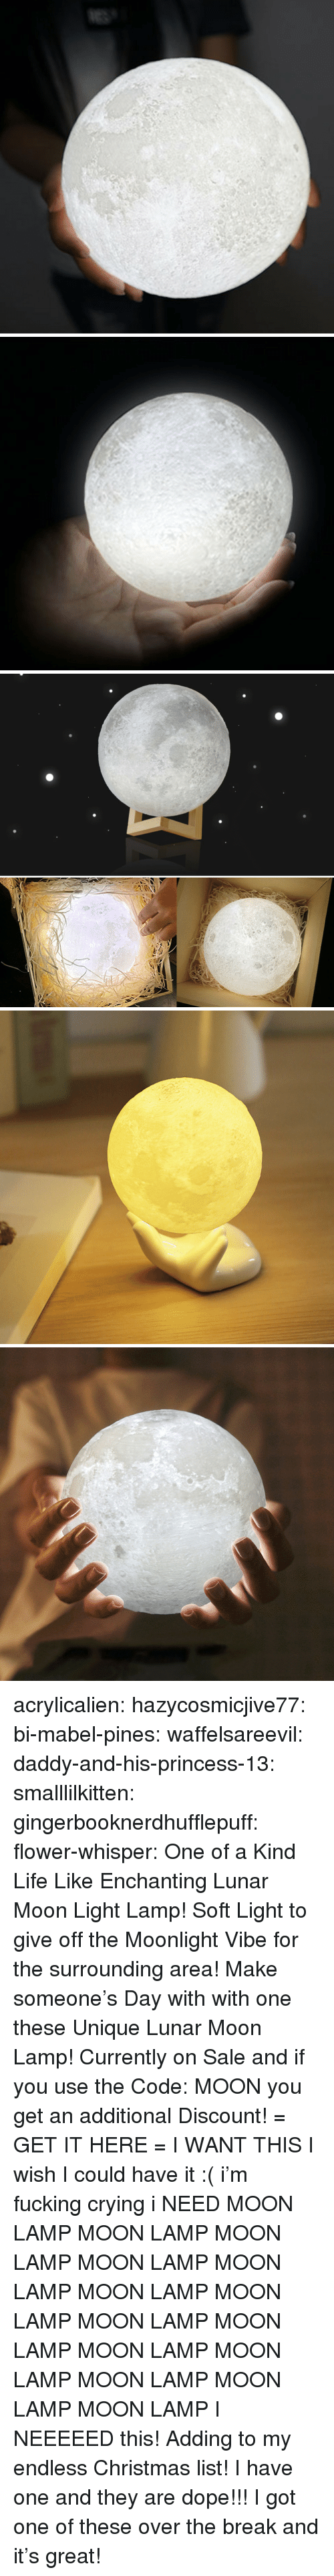 Mooning You: acrylicalien:  hazycosmicjive77:  bi-mabel-pines:  waffelsareevil:   daddy-and-his-princess-13:  smalllilkitten:   gingerbooknerdhufflepuff:   flower-whisper:  One of a Kind Life Like Enchanting Lunar Moon Light Lamp! Soft Light to give off the Moonlight Vibe for the surrounding area! Make someone's Day with with one these Unique Lunar Moon Lamp! Currently on Sale and if you use the Code: MOON you get an additional Discount! = GET IT HERE =   I WANT THIS   I wish I could have it :(   i'm fucking crying i NEED   MOON LAMP MOON LAMP MOON LAMP MOON LAMP MOON LAMP MOON LAMP MOON LAMP MOON LAMP MOON LAMP MOON LAMP MOON LAMP MOON LAMP MOON LAMP MOON LAMP   I NEEEEED this! Adding to my endless Christmas list!  I have one and they are dope!!!   I got one of these over the break and it's great!